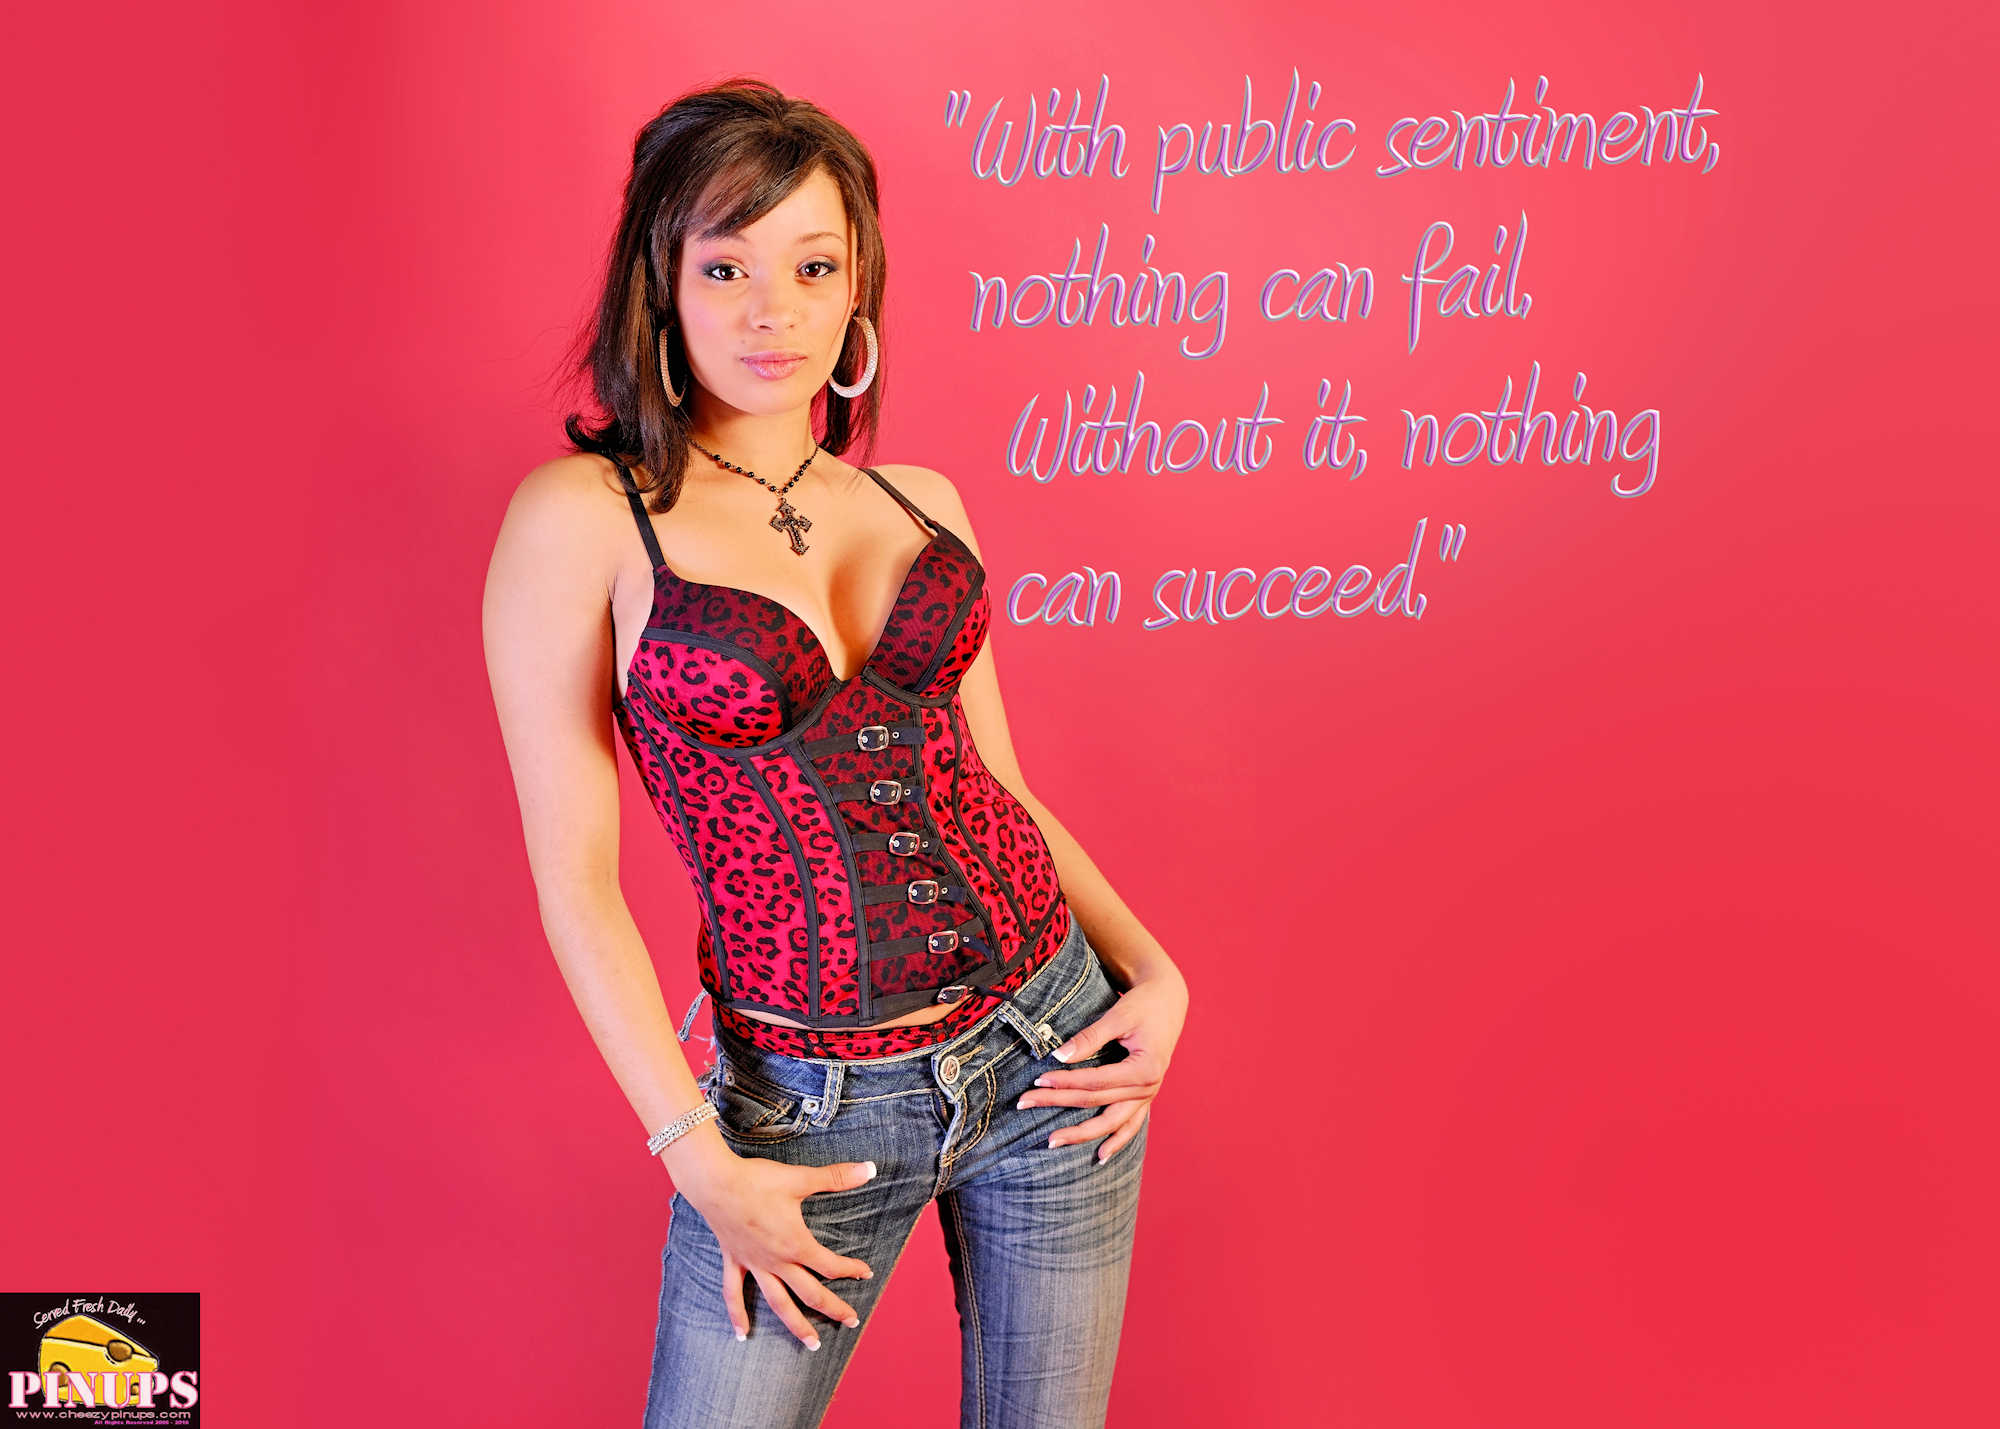 "Cheezy Pinup - February 12, 2018   ""With public sentiment, nothing can fail. Without it, nothing can succeed."" - Abraham Lincoln Model: Natasha"